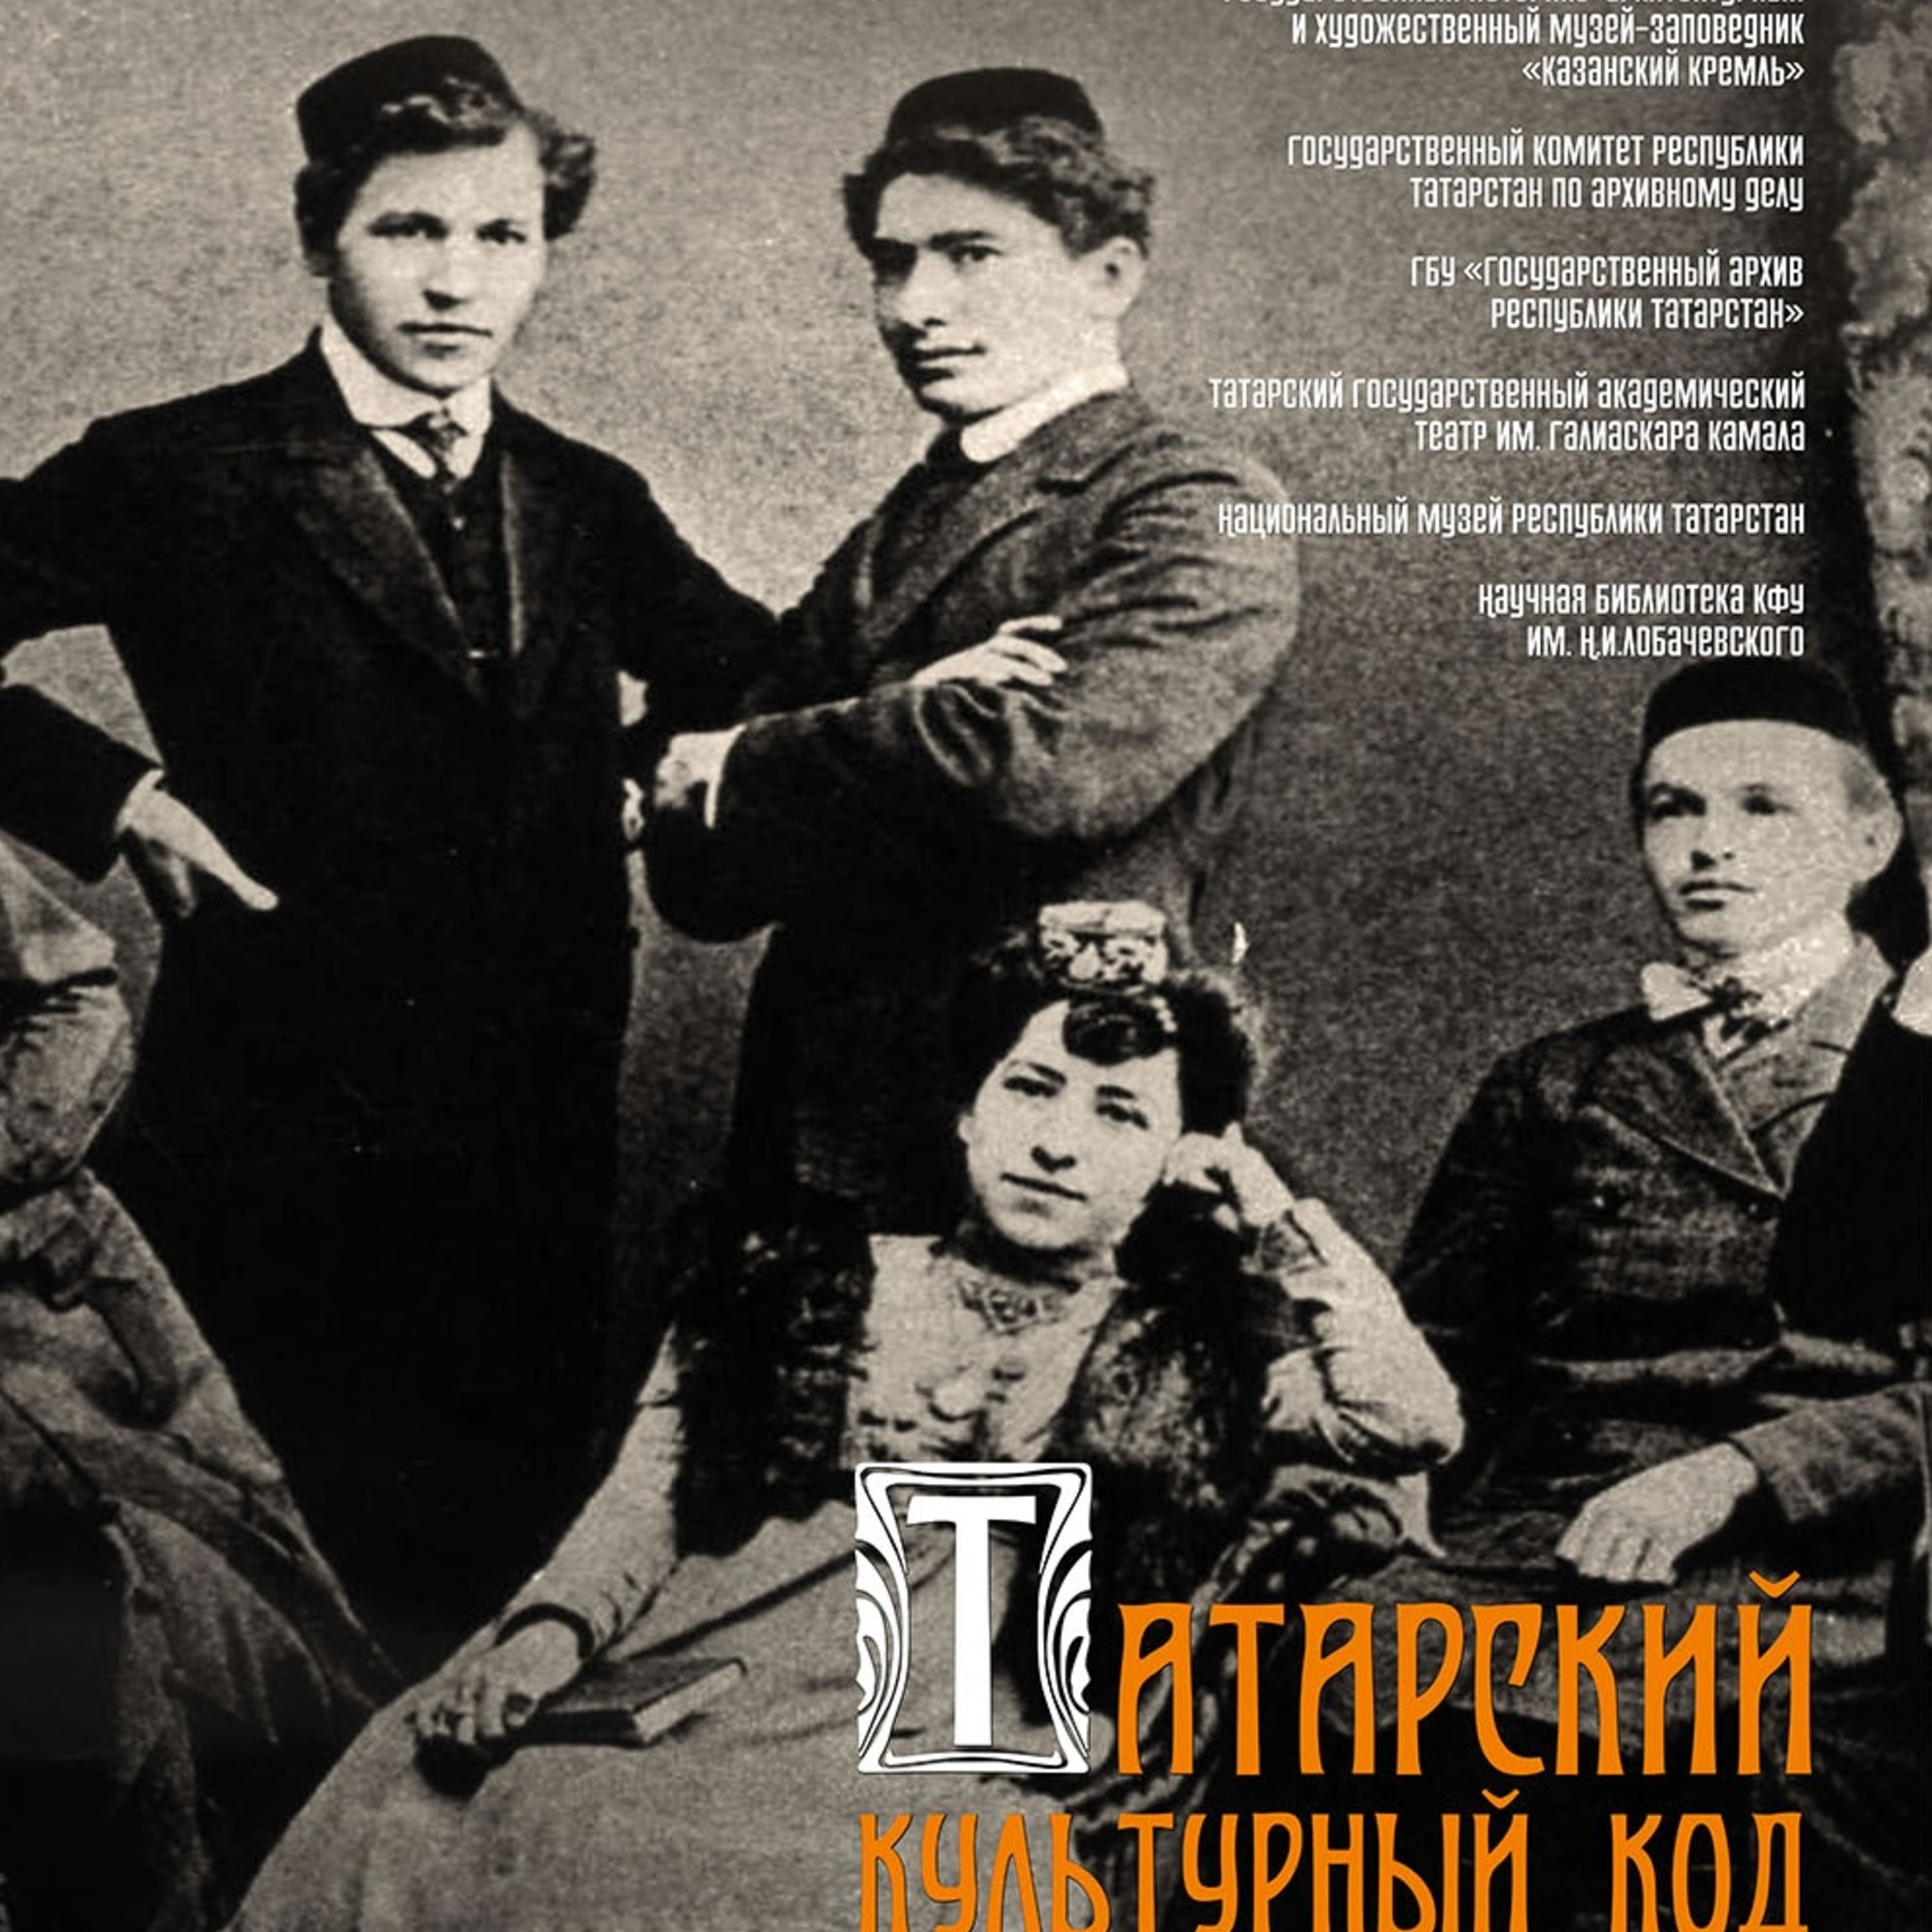 The exhibition Tatar cultural code: the first 110 years of Tatar theater